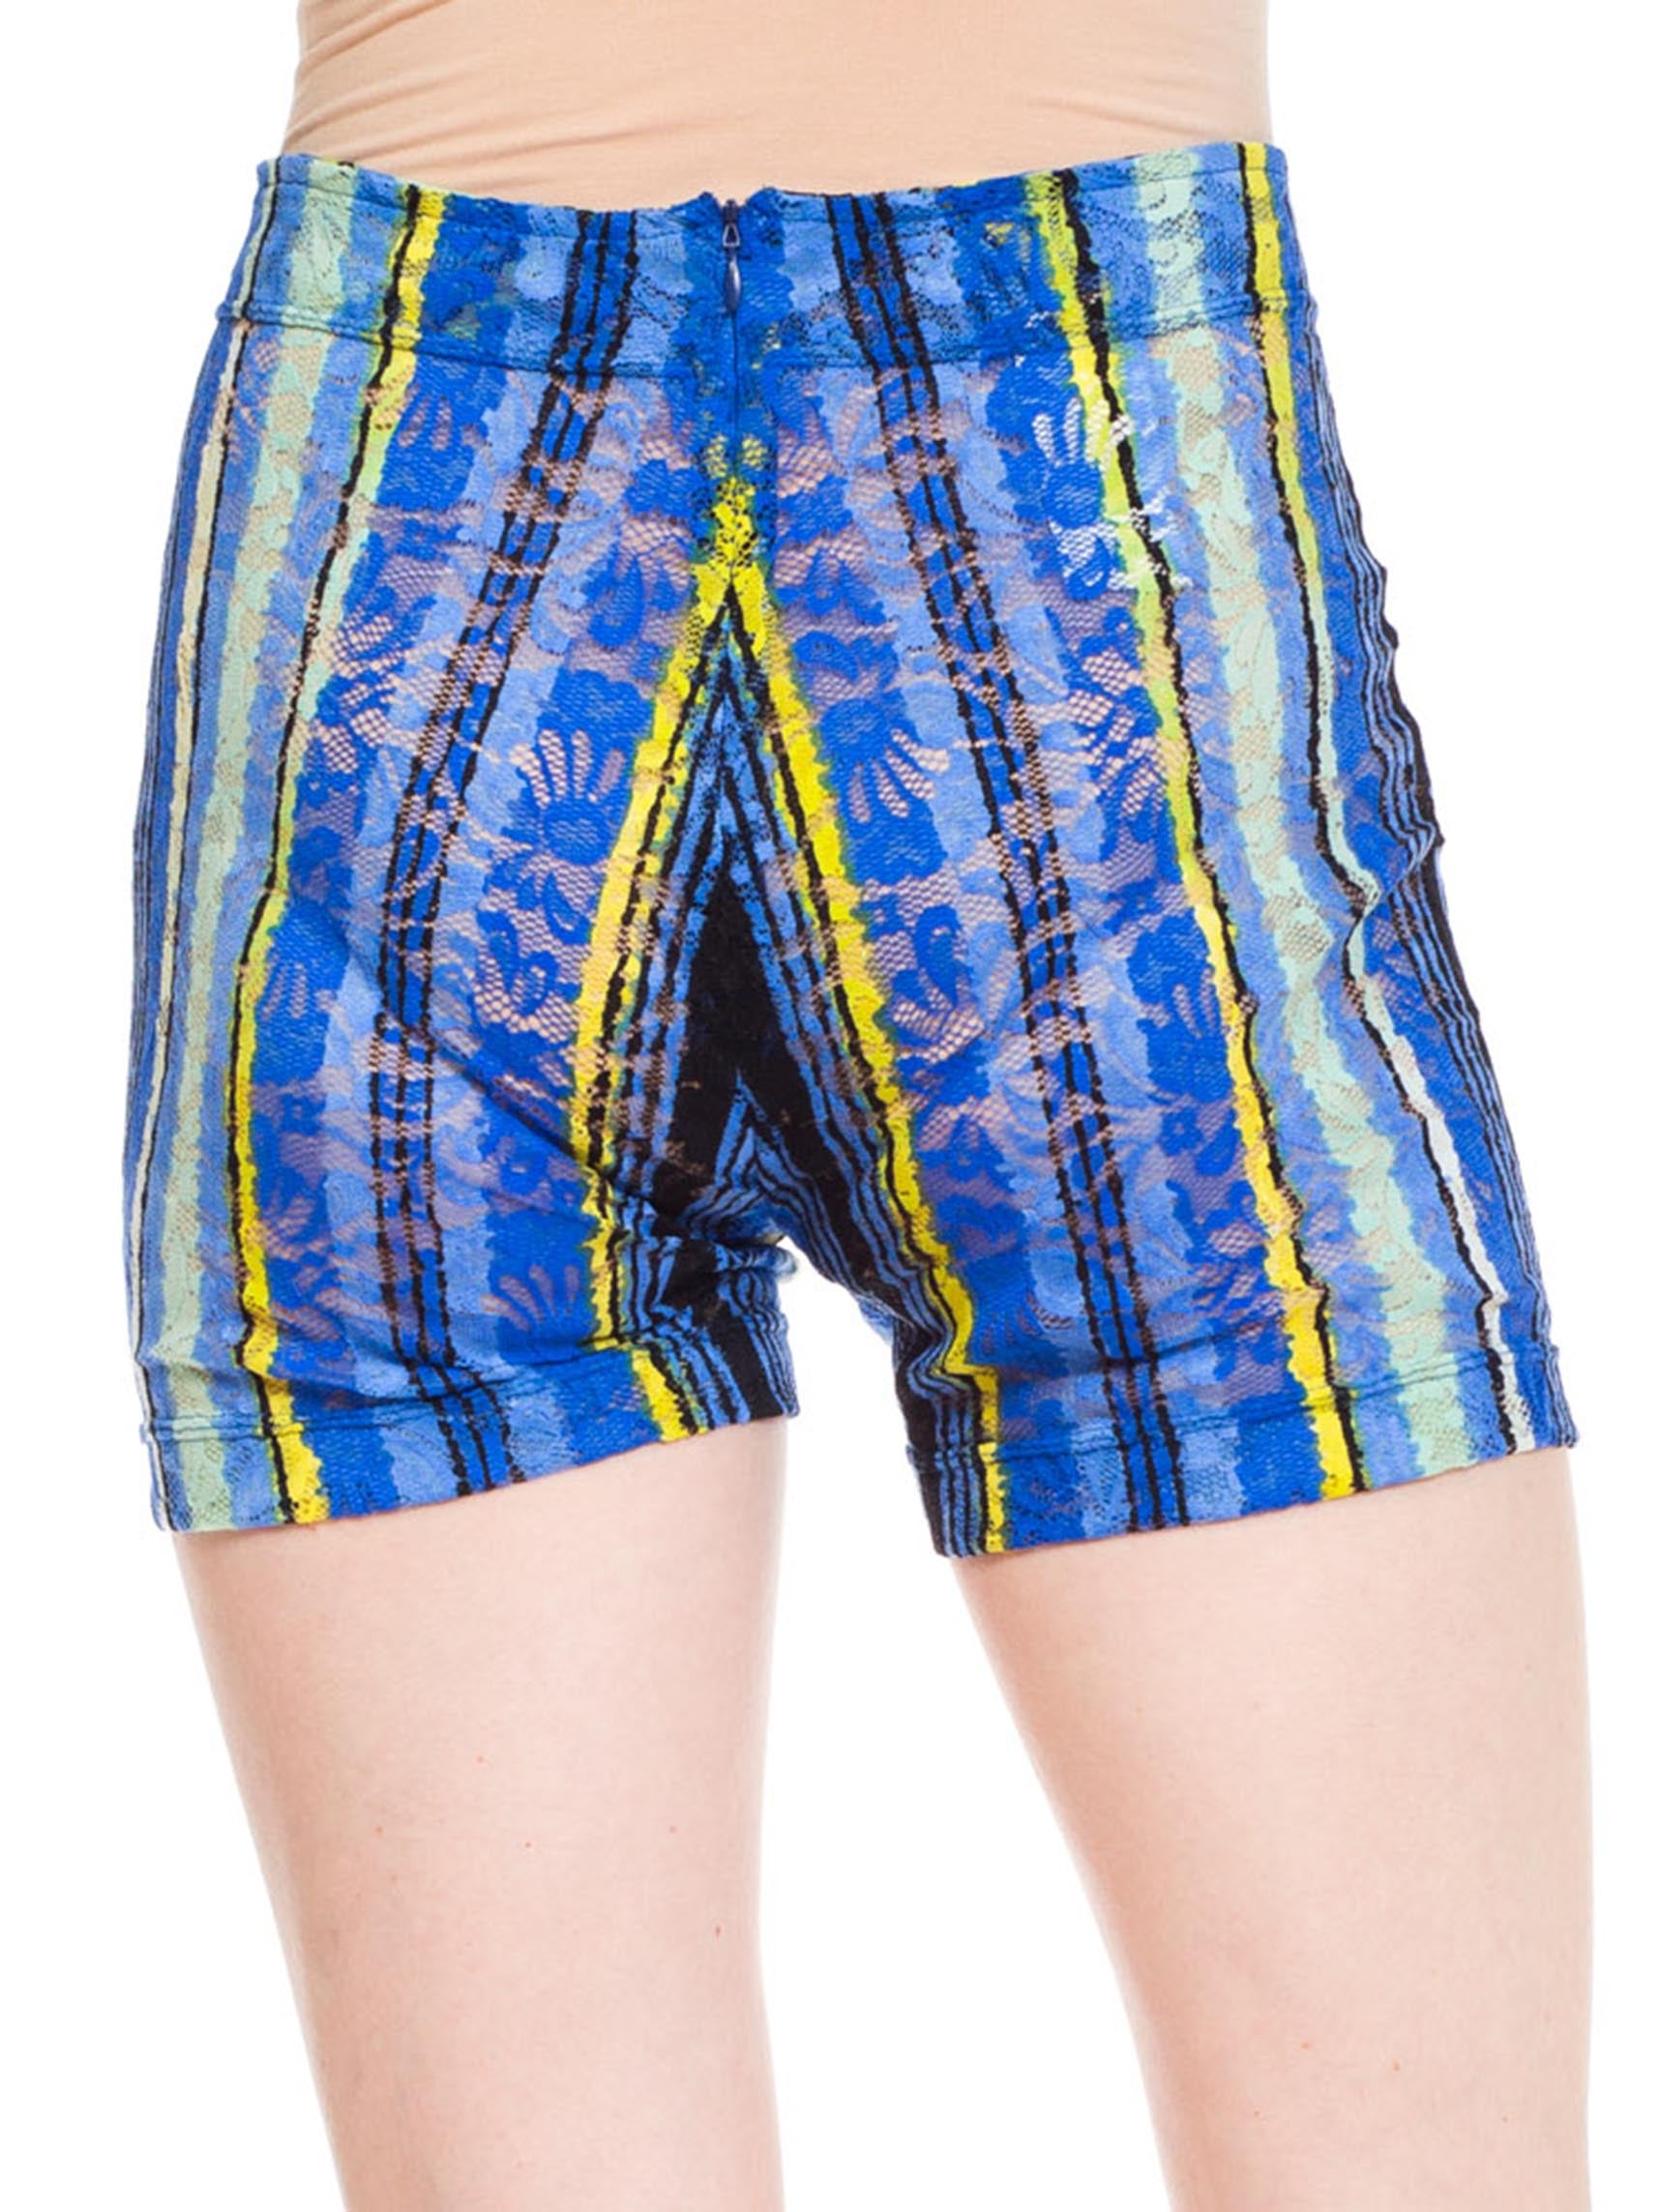 Gianni Versace Striped Lace Bike Shorts